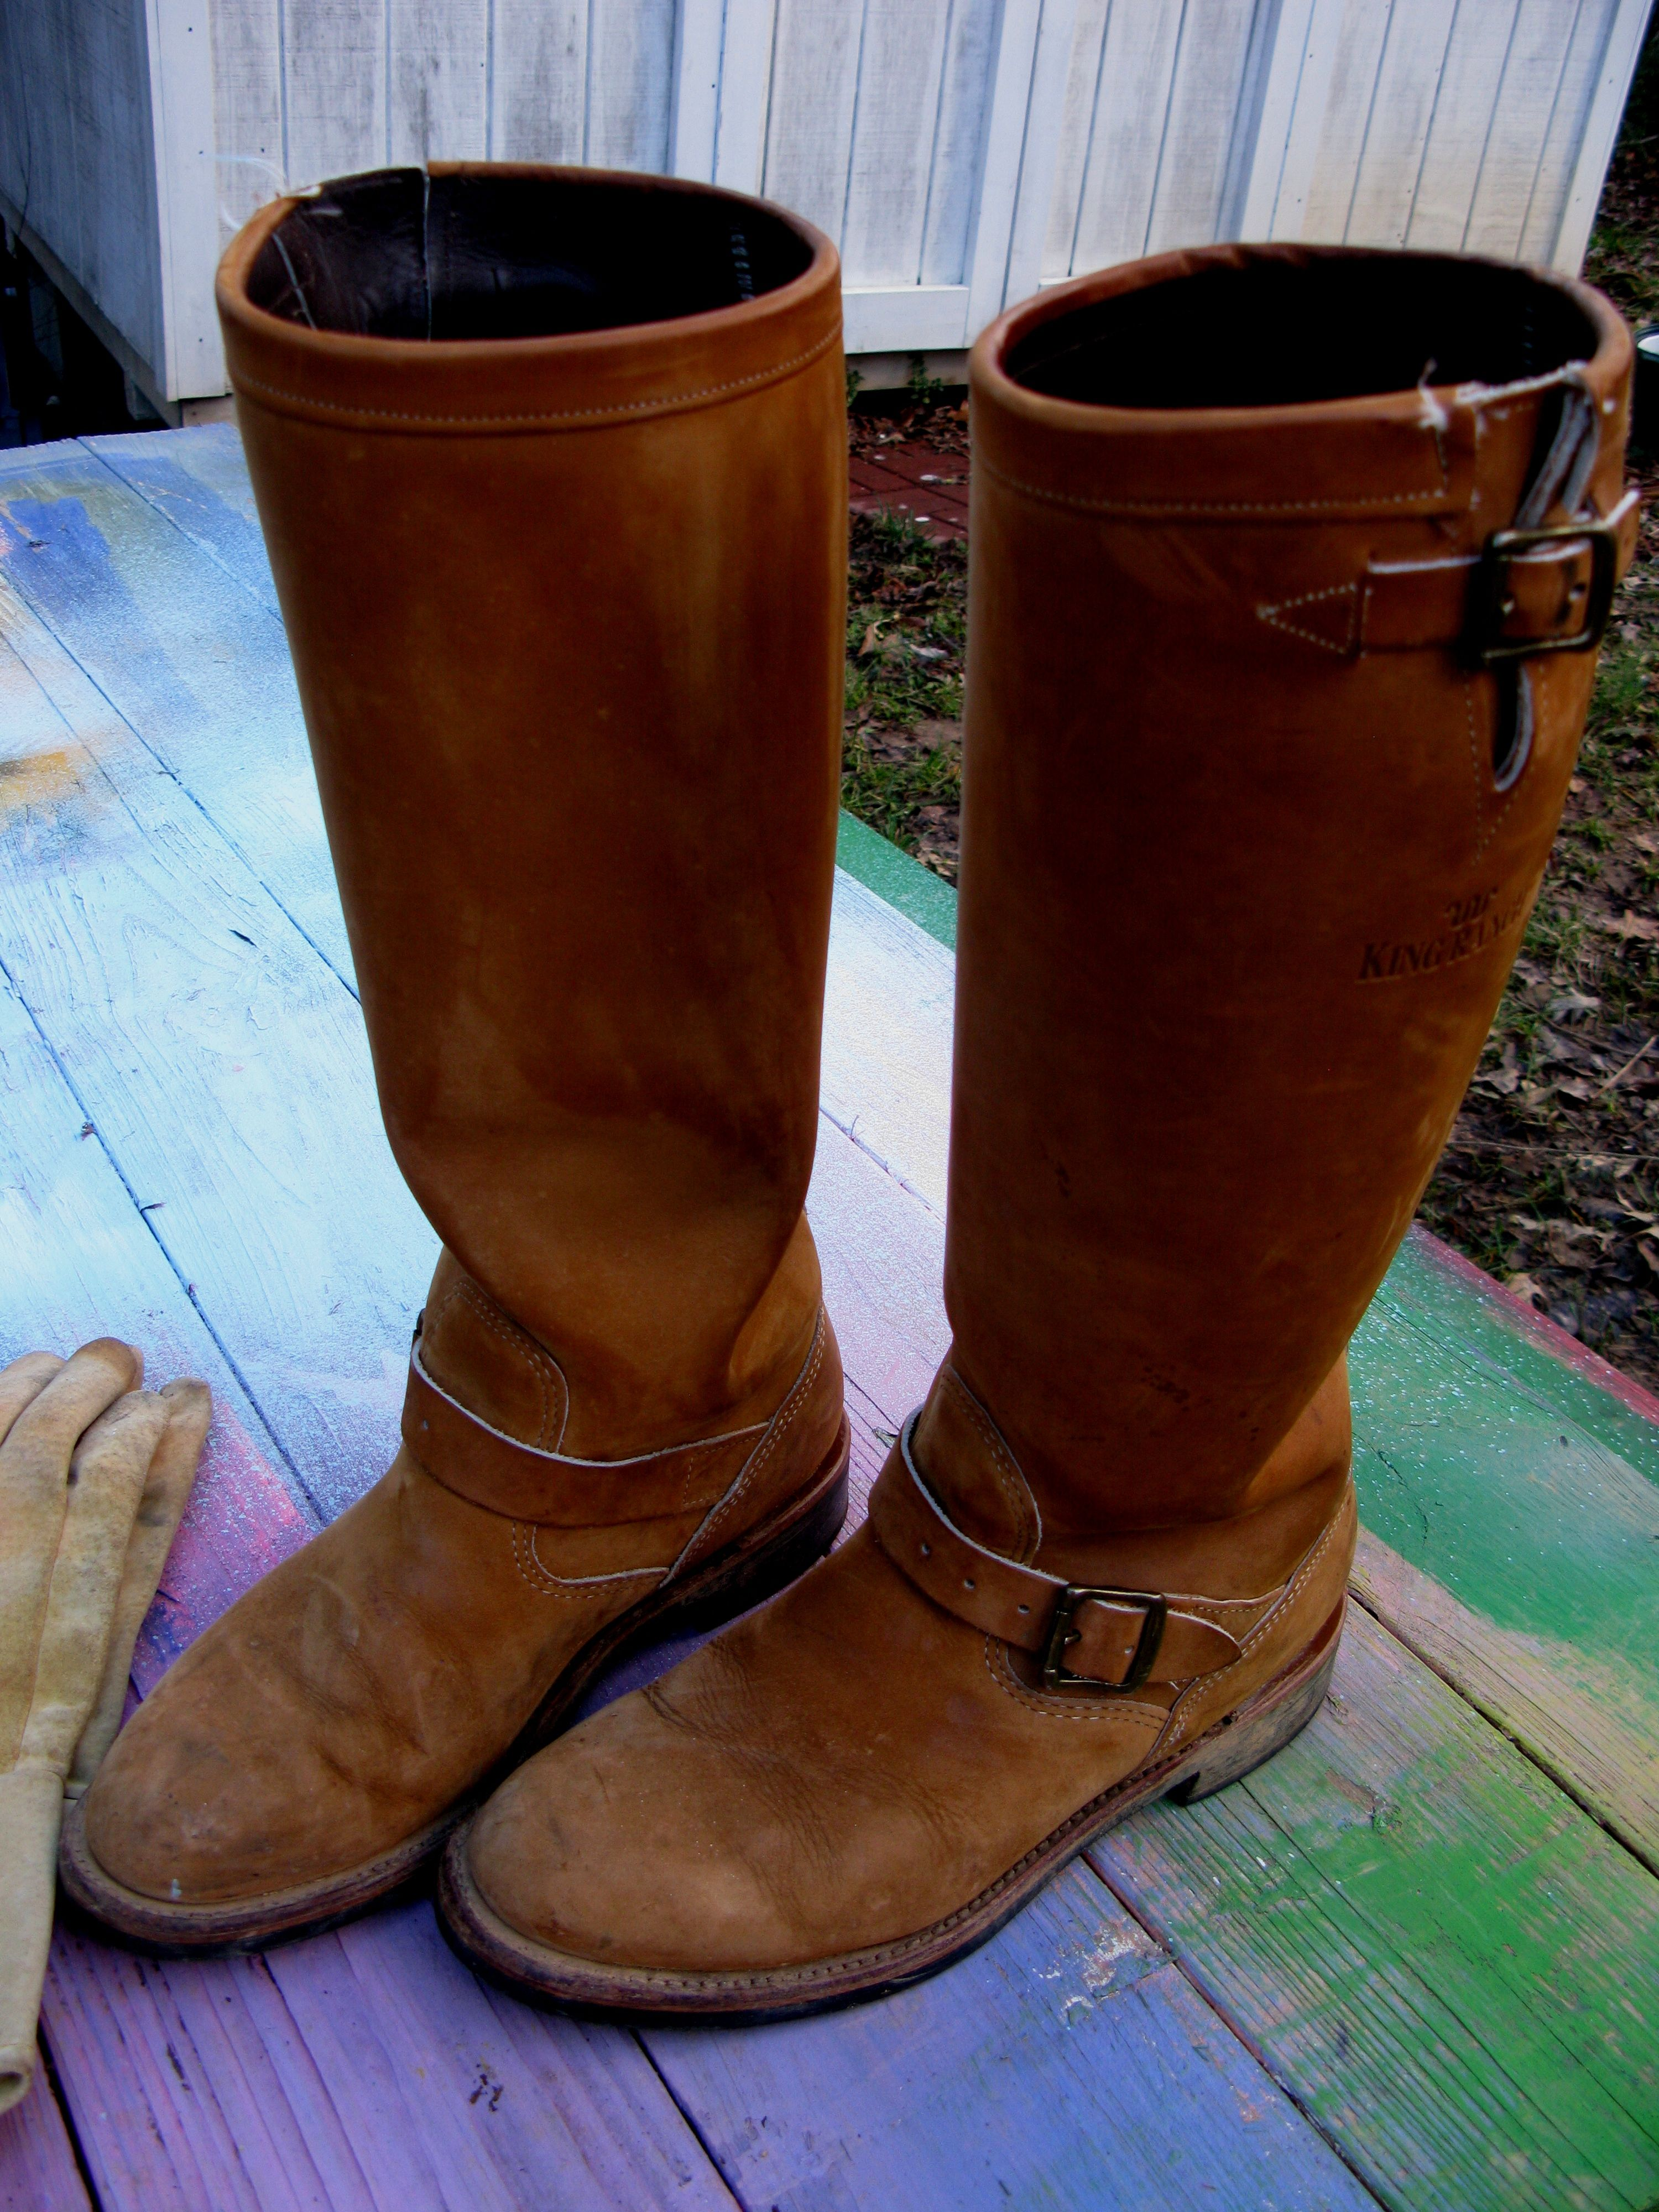 8679d0e9566 Men's Boots - My King Ranch boots. These are serious boots ...